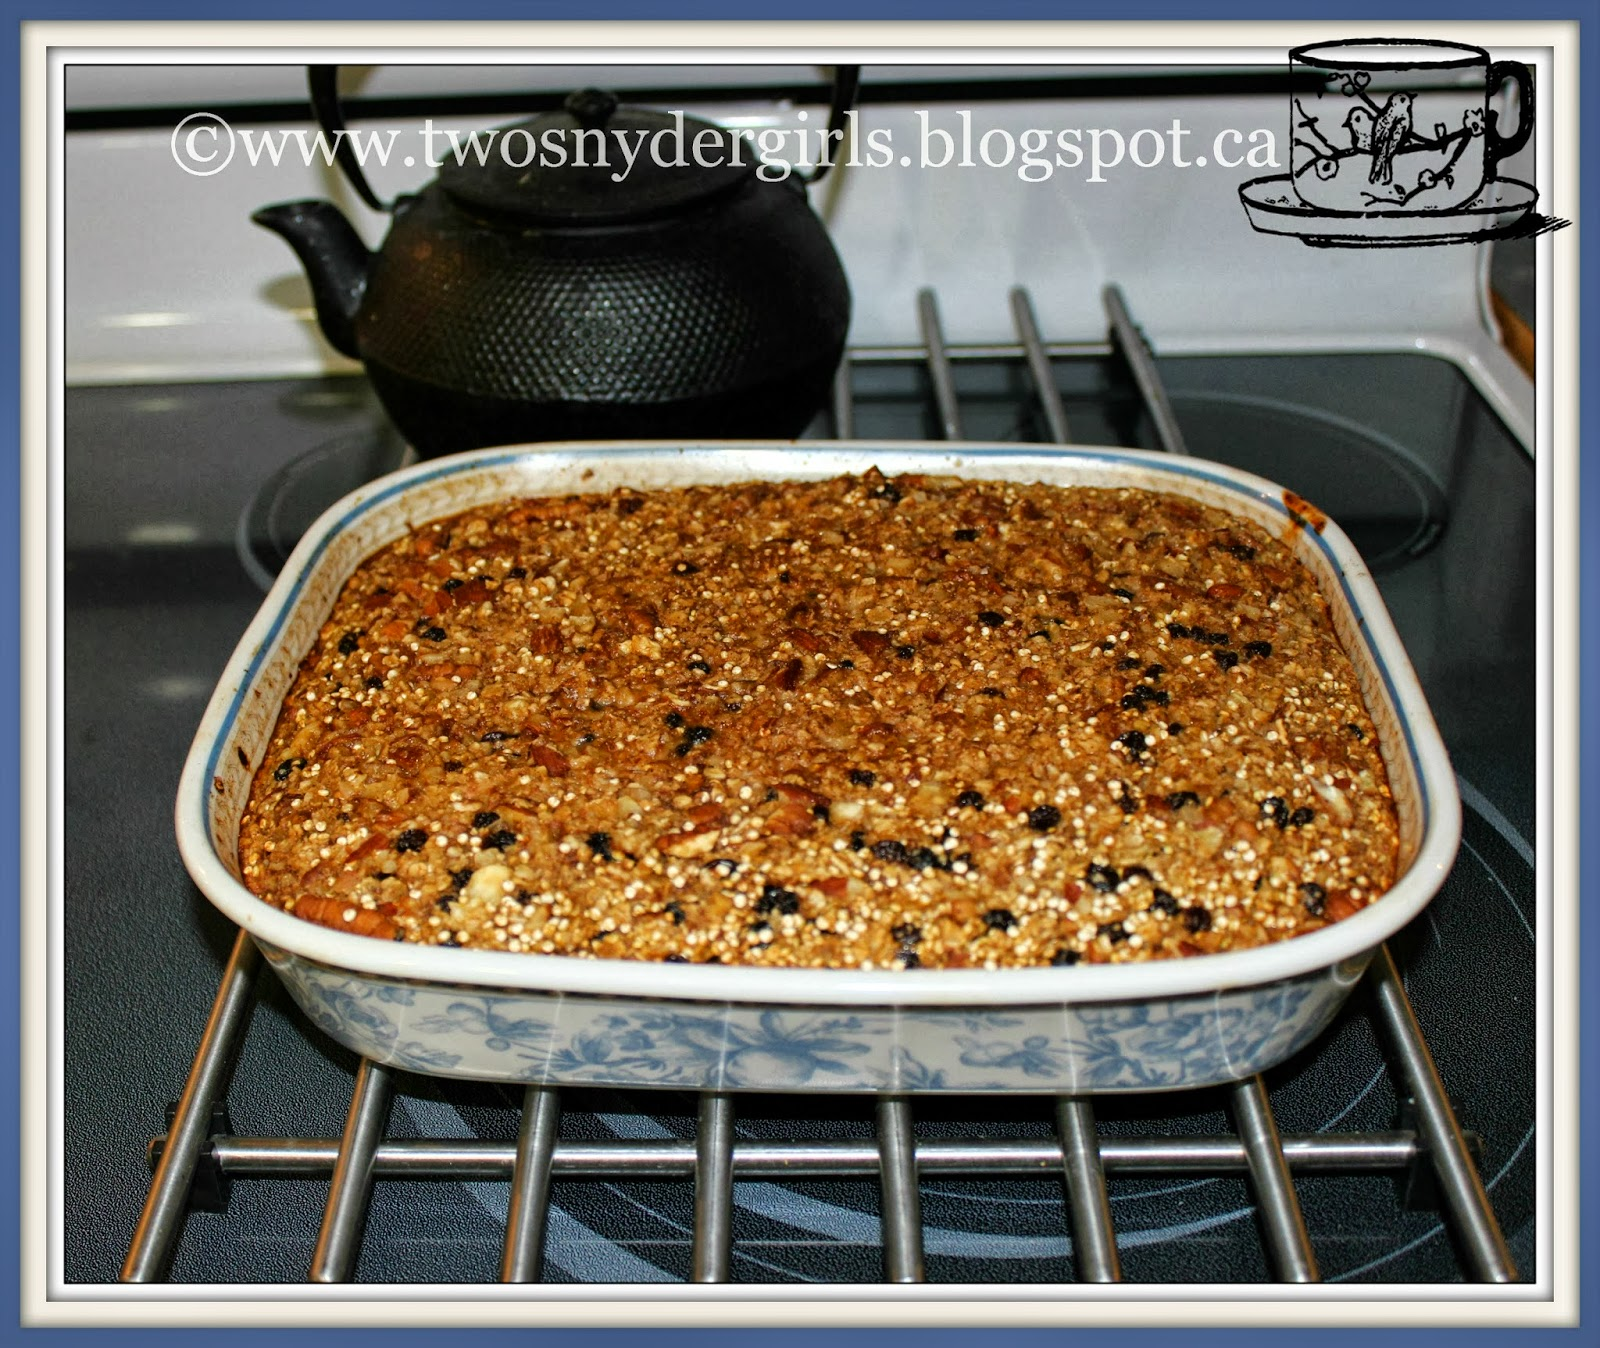 Gluten Free Baked Oatmeal and Quinoa